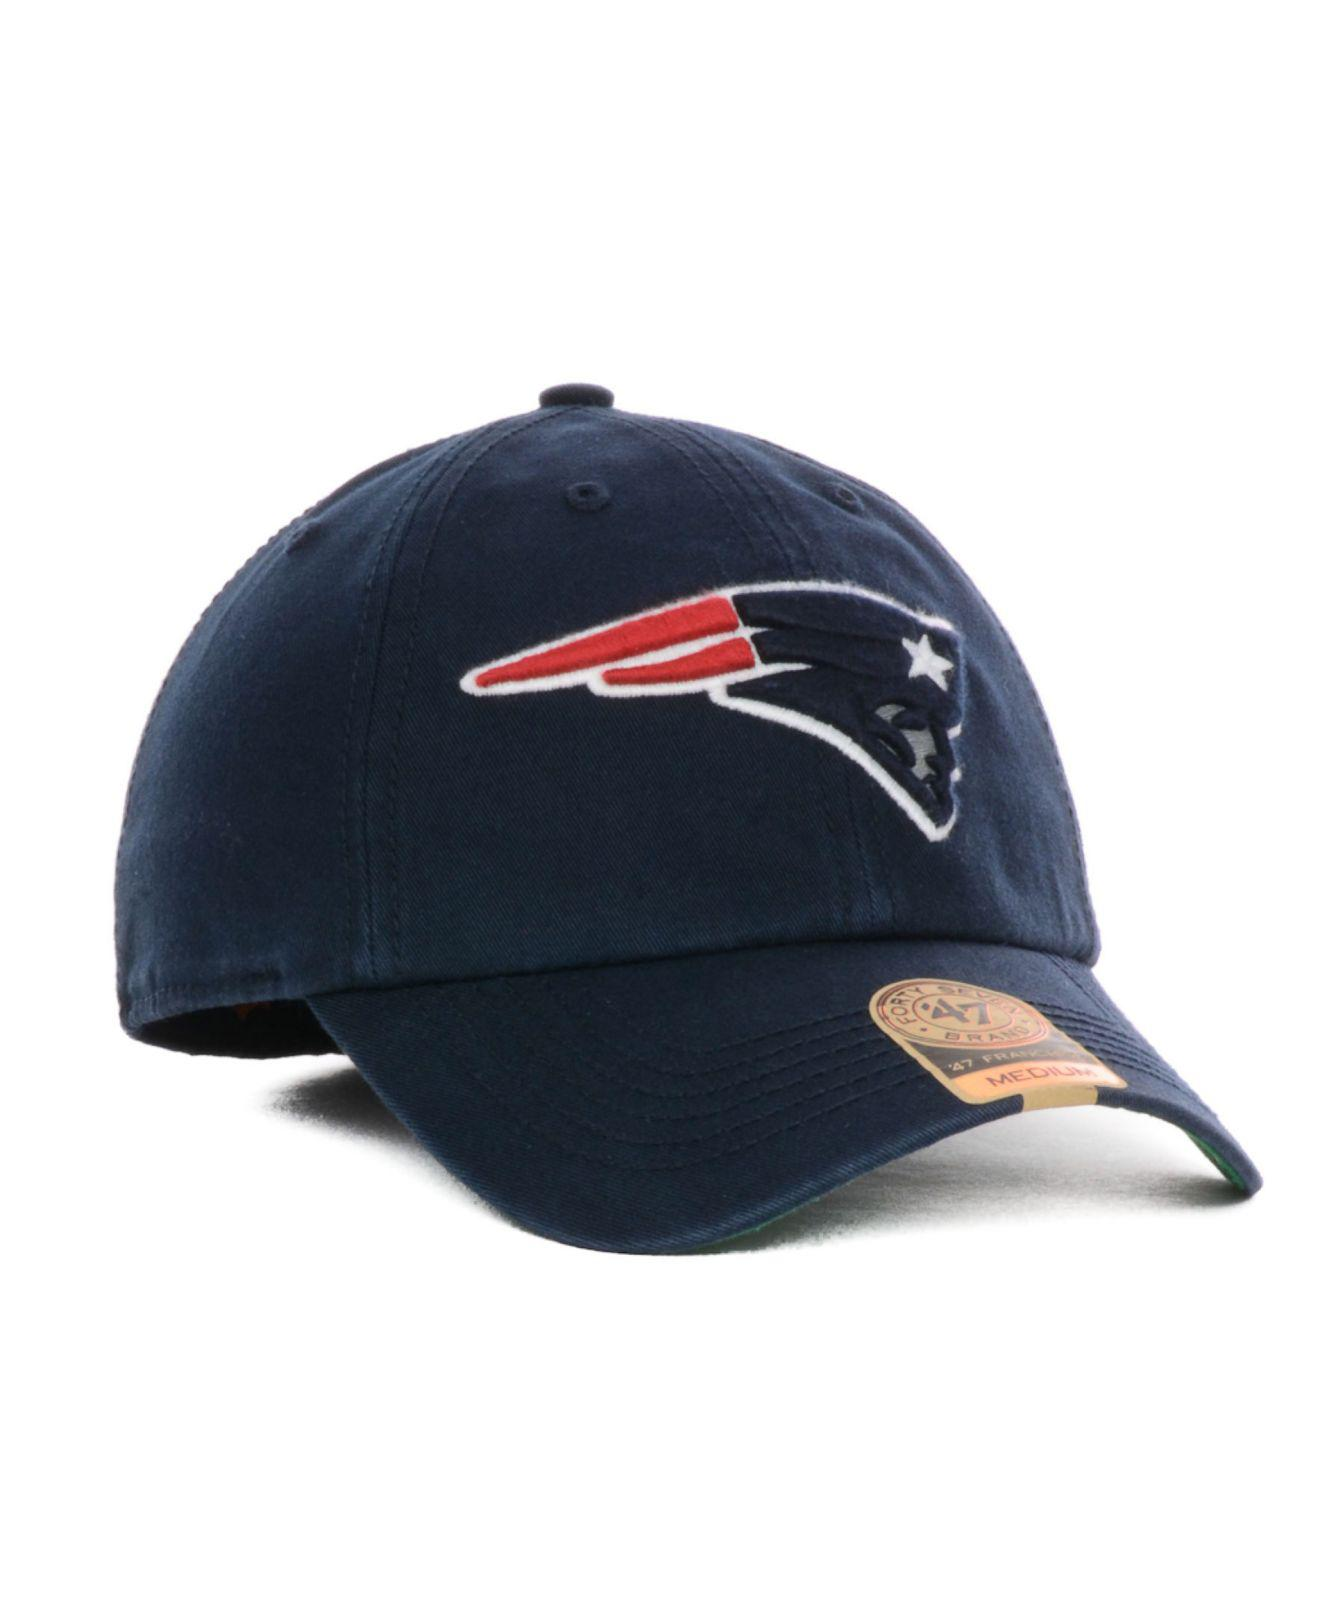 buy popular 9c14f 8aabf Lyst - 47 Brand New England Patriots Franchise Hat in Blue for Men